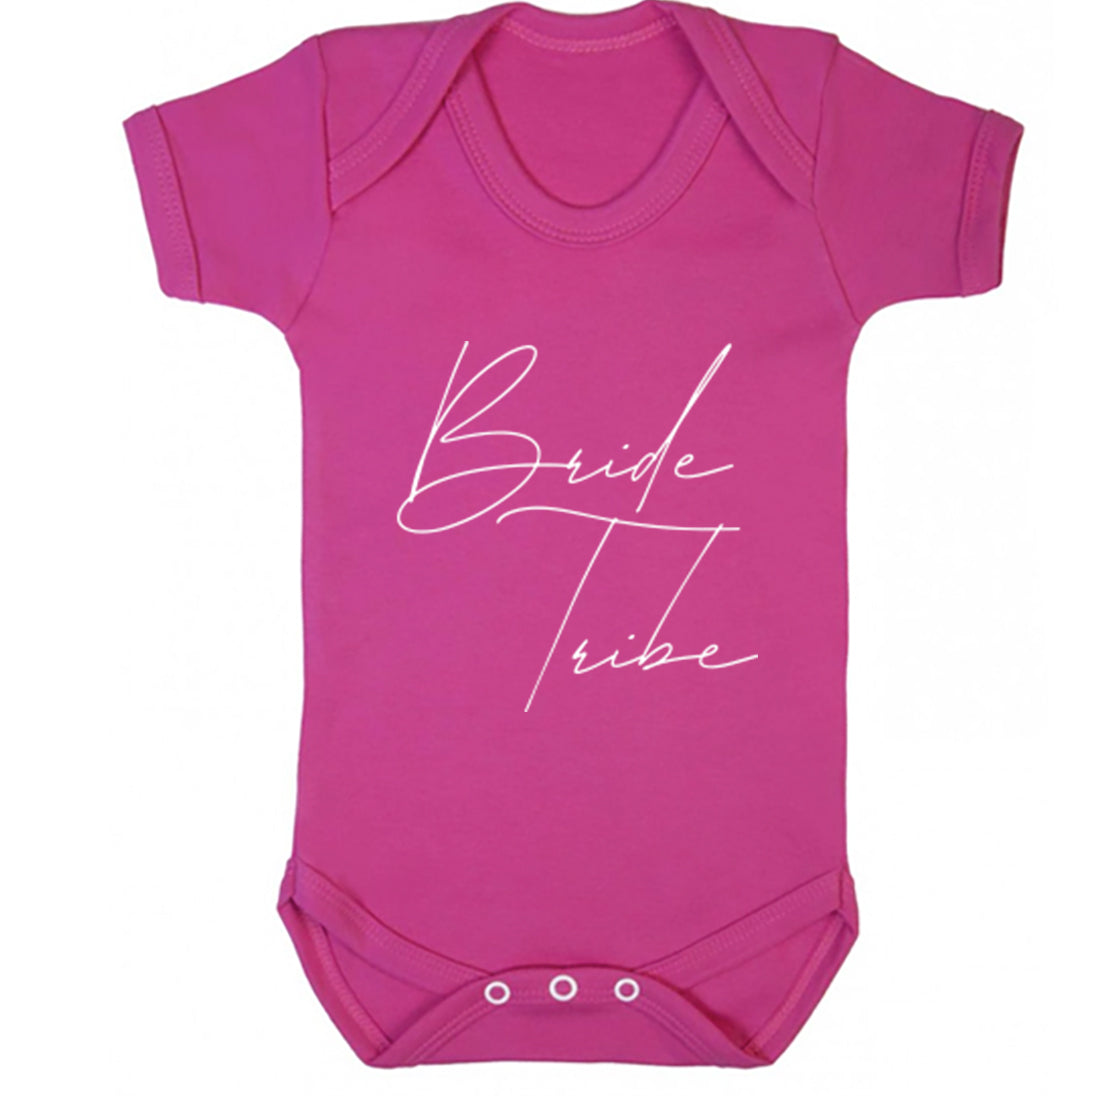 Bride Tribe Baby Vest K2373 - Illustrated Identity Ltd.